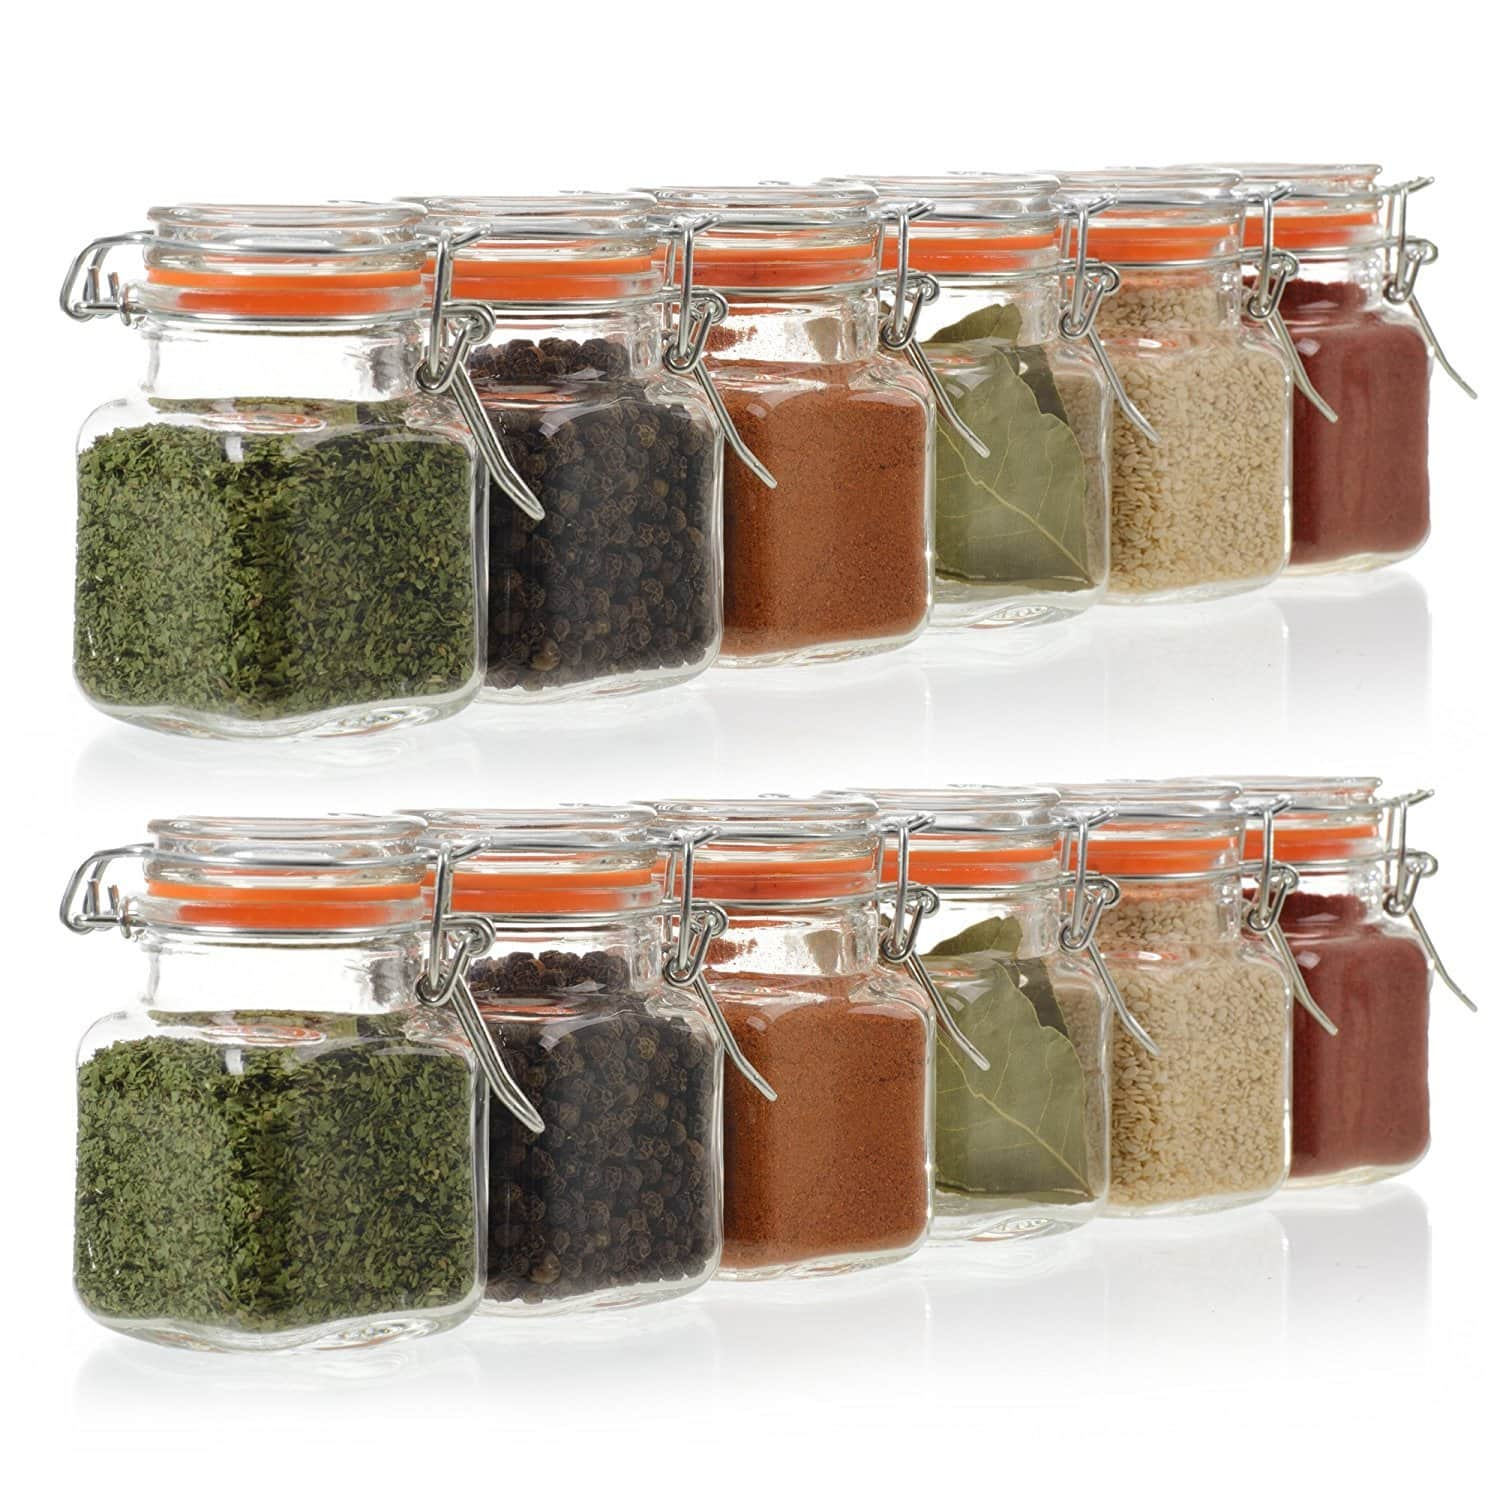 24 Pack - 3.4 Ounce Mini Square Glass Spice Jar with Orange Flip-Top Gasket $22.95